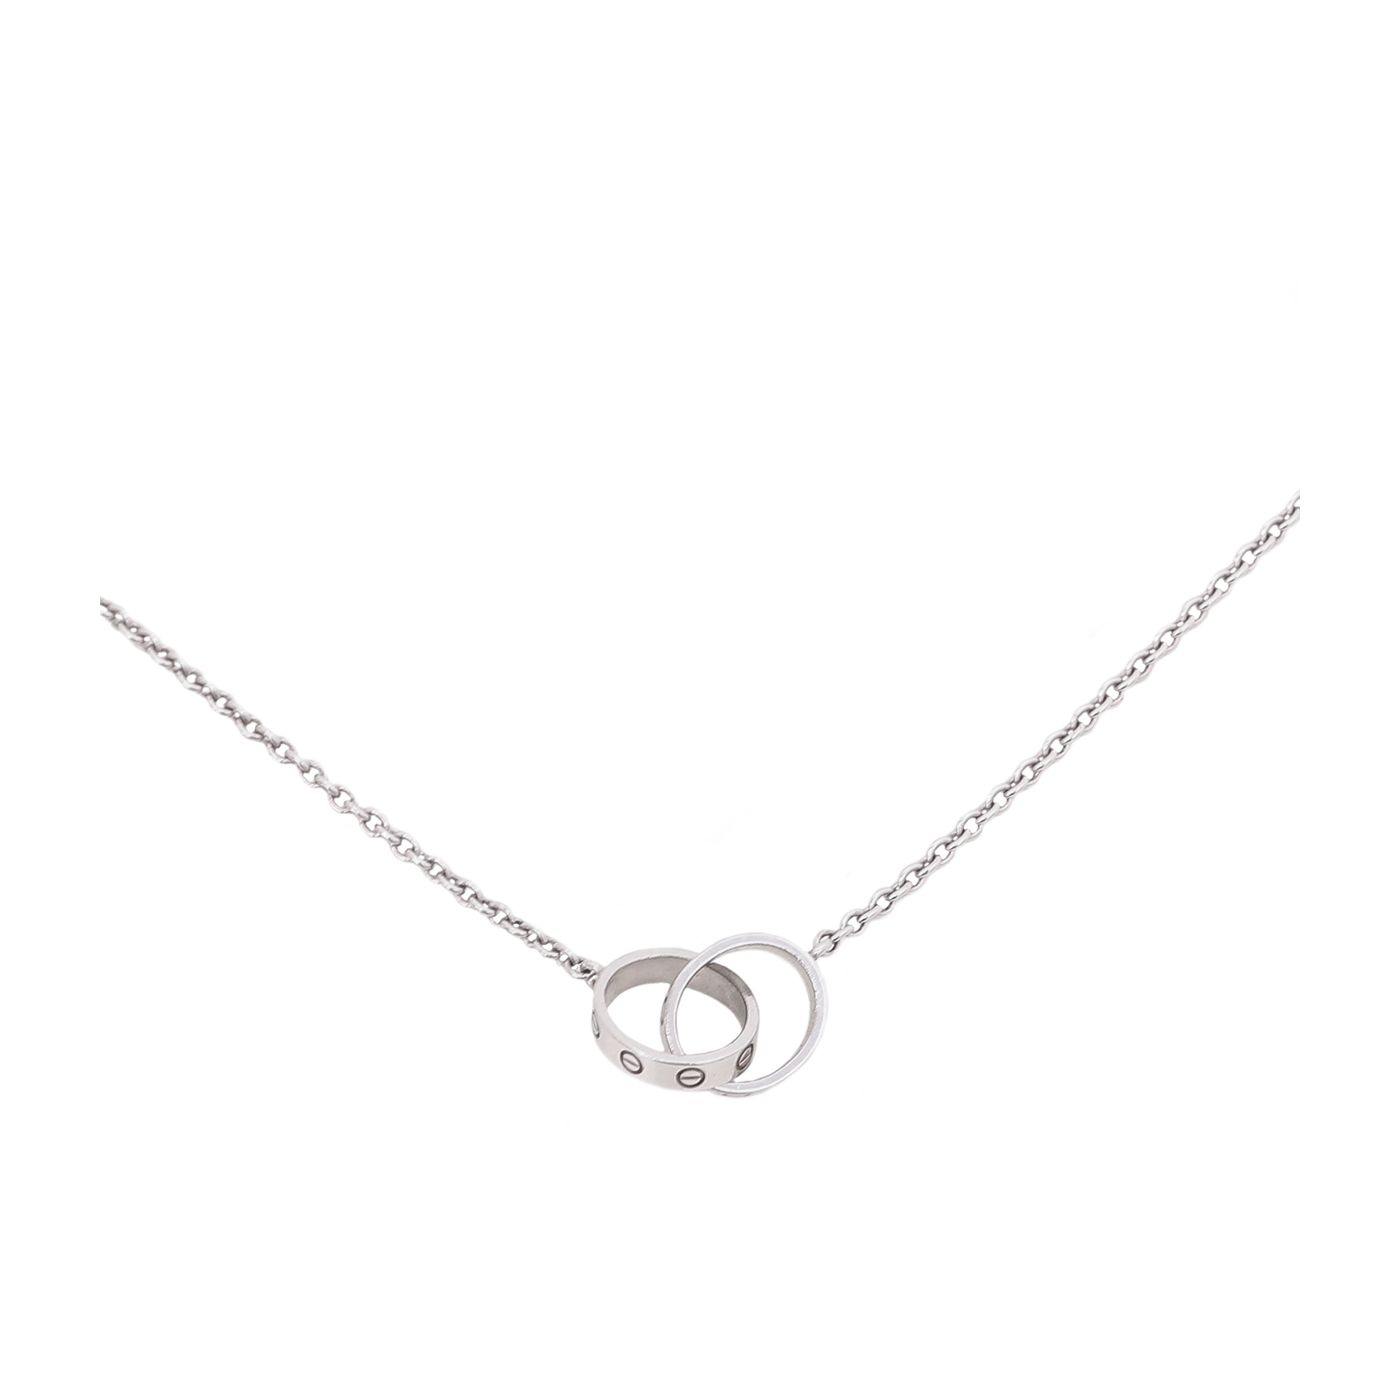 Cartier 18K White Gold Love Hoop Necklace